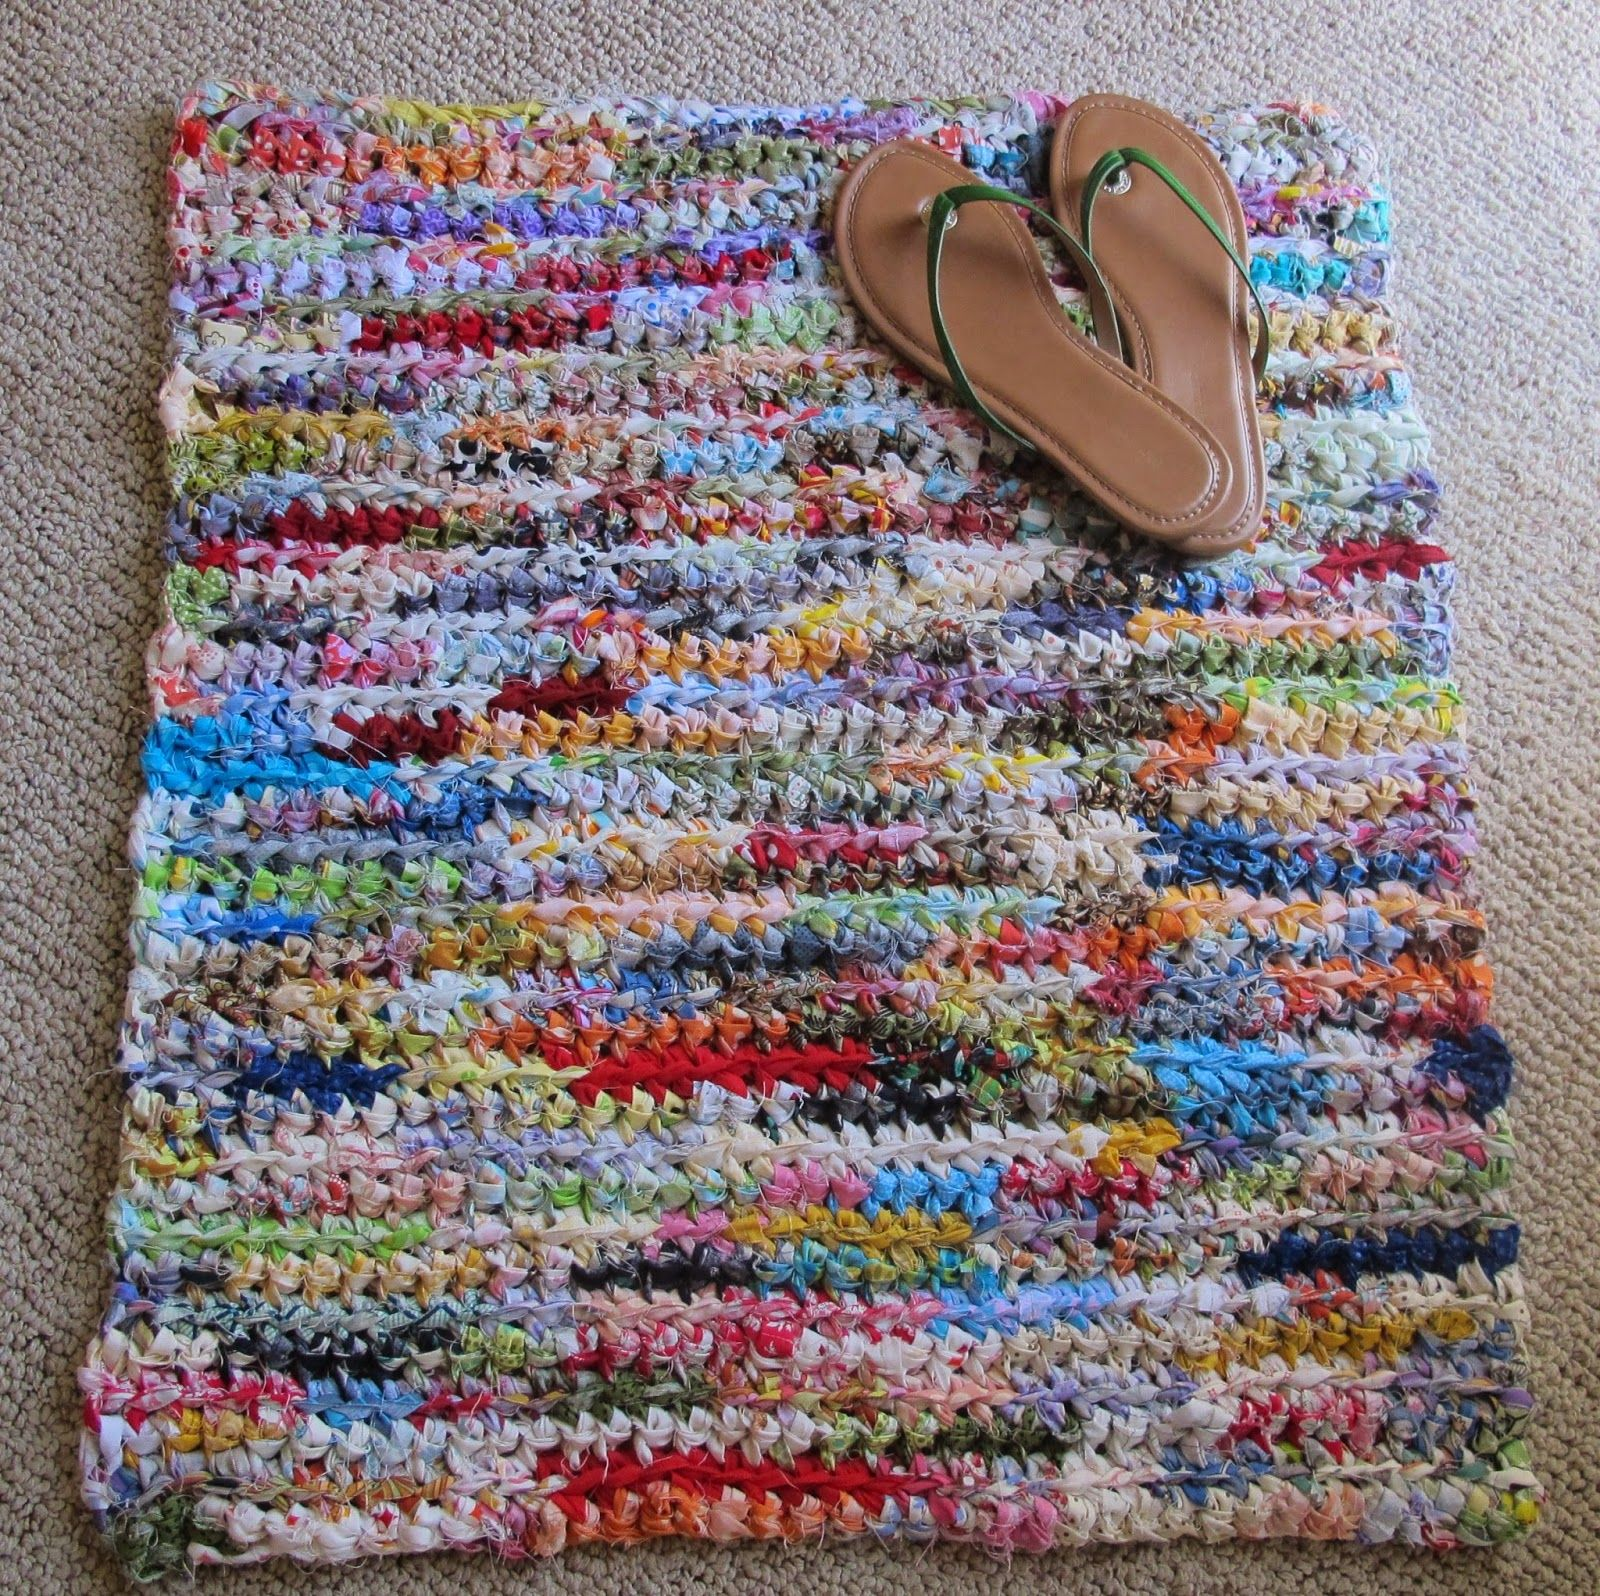 Pieceful: Crochet Rag Rug …